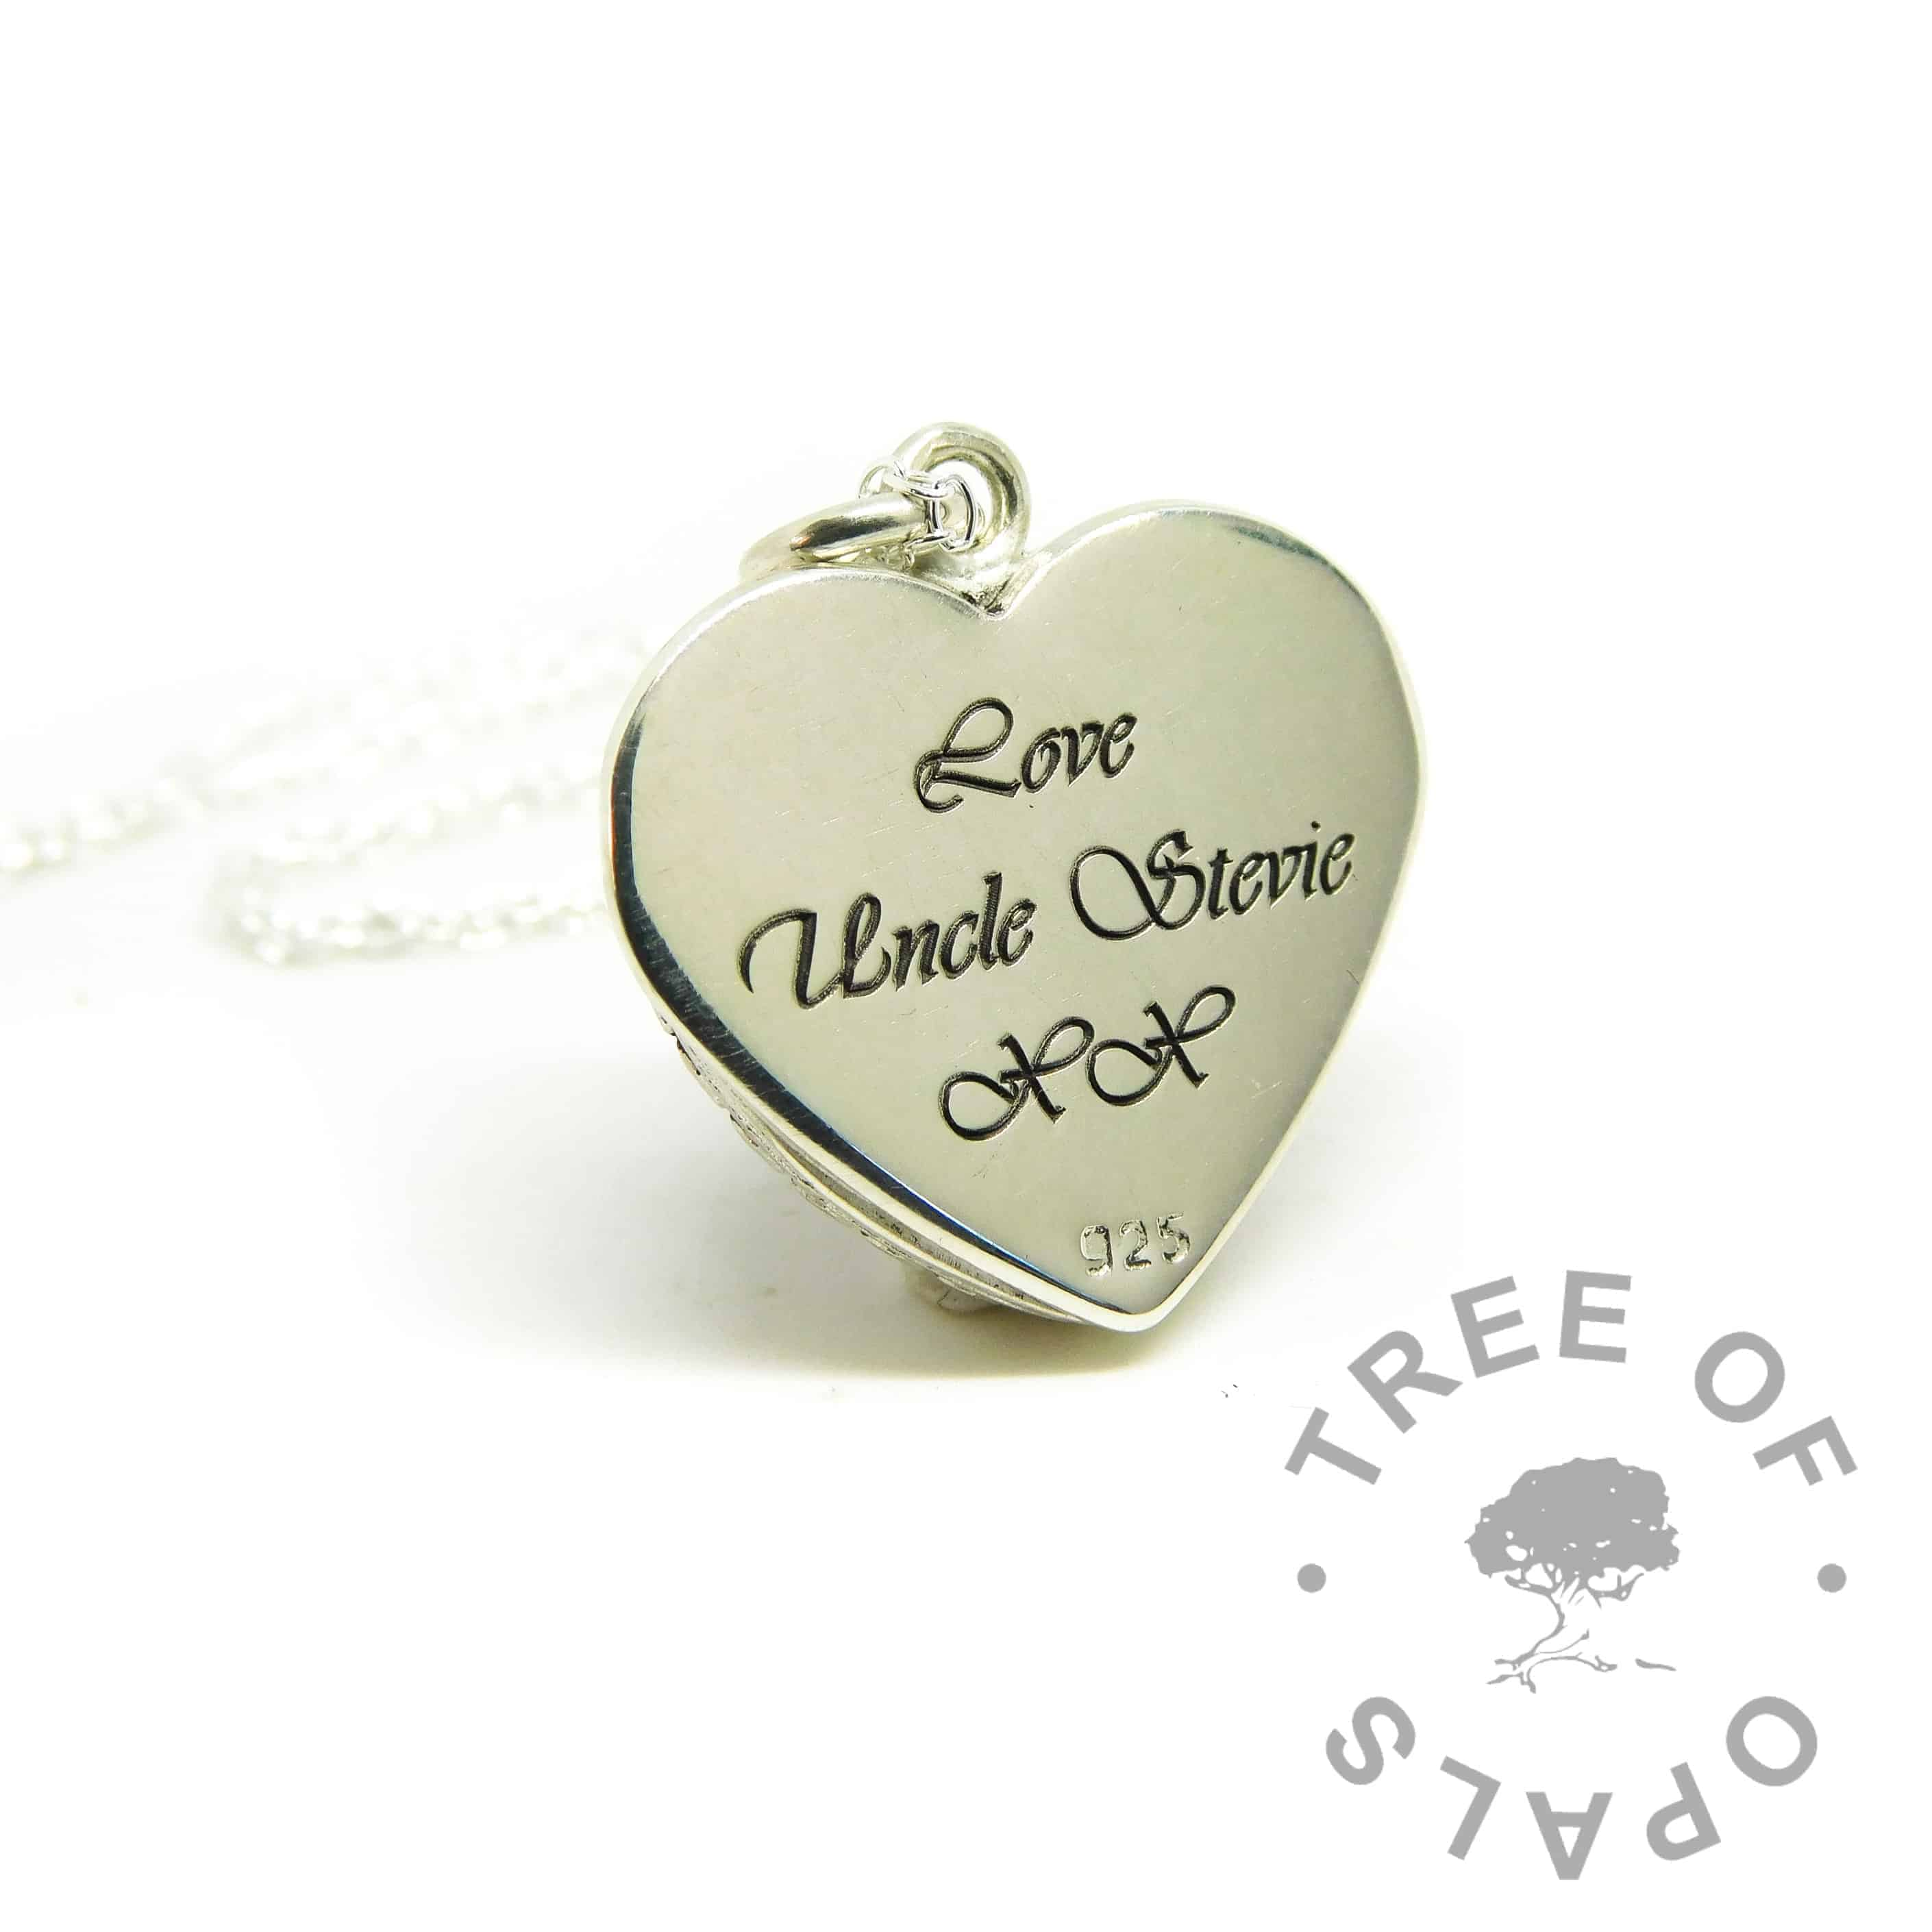 engraved heart necklace, engraved in Vivaldi font